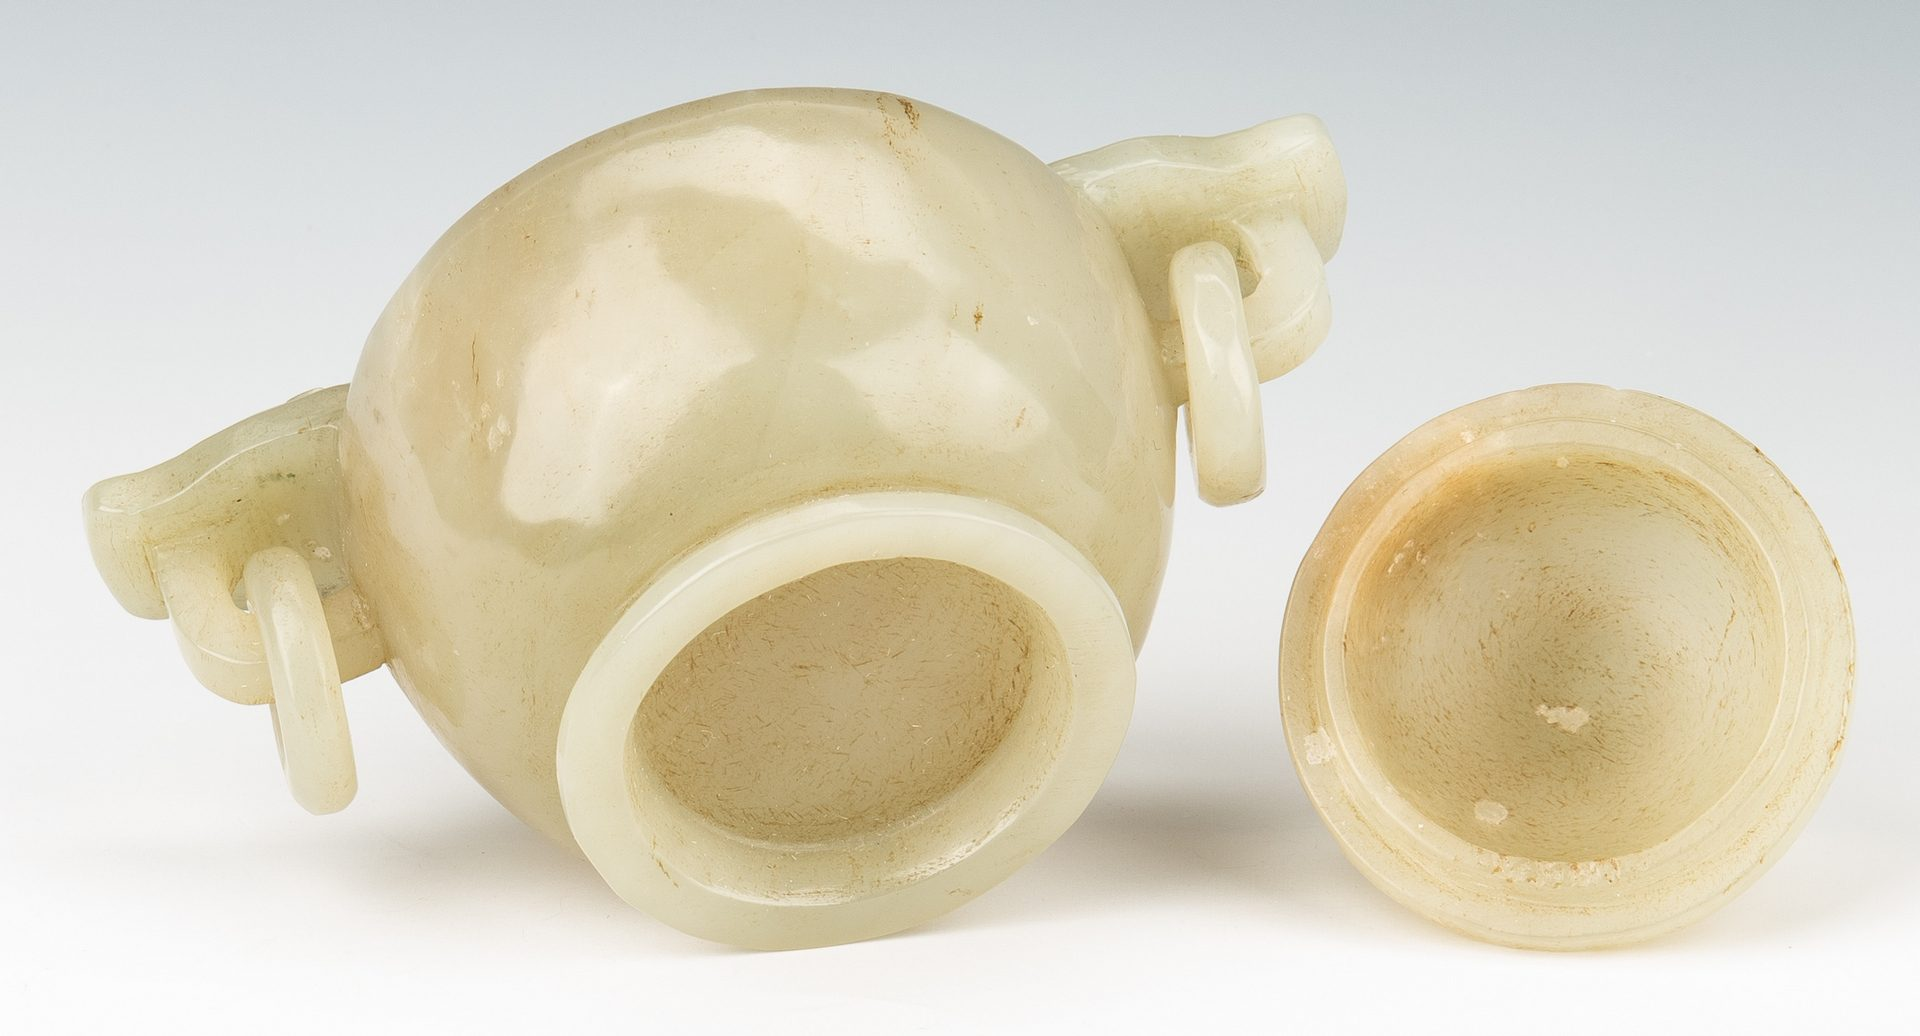 Lot 466: Chinese Celadon Jade Jar w/ Dragon Handles